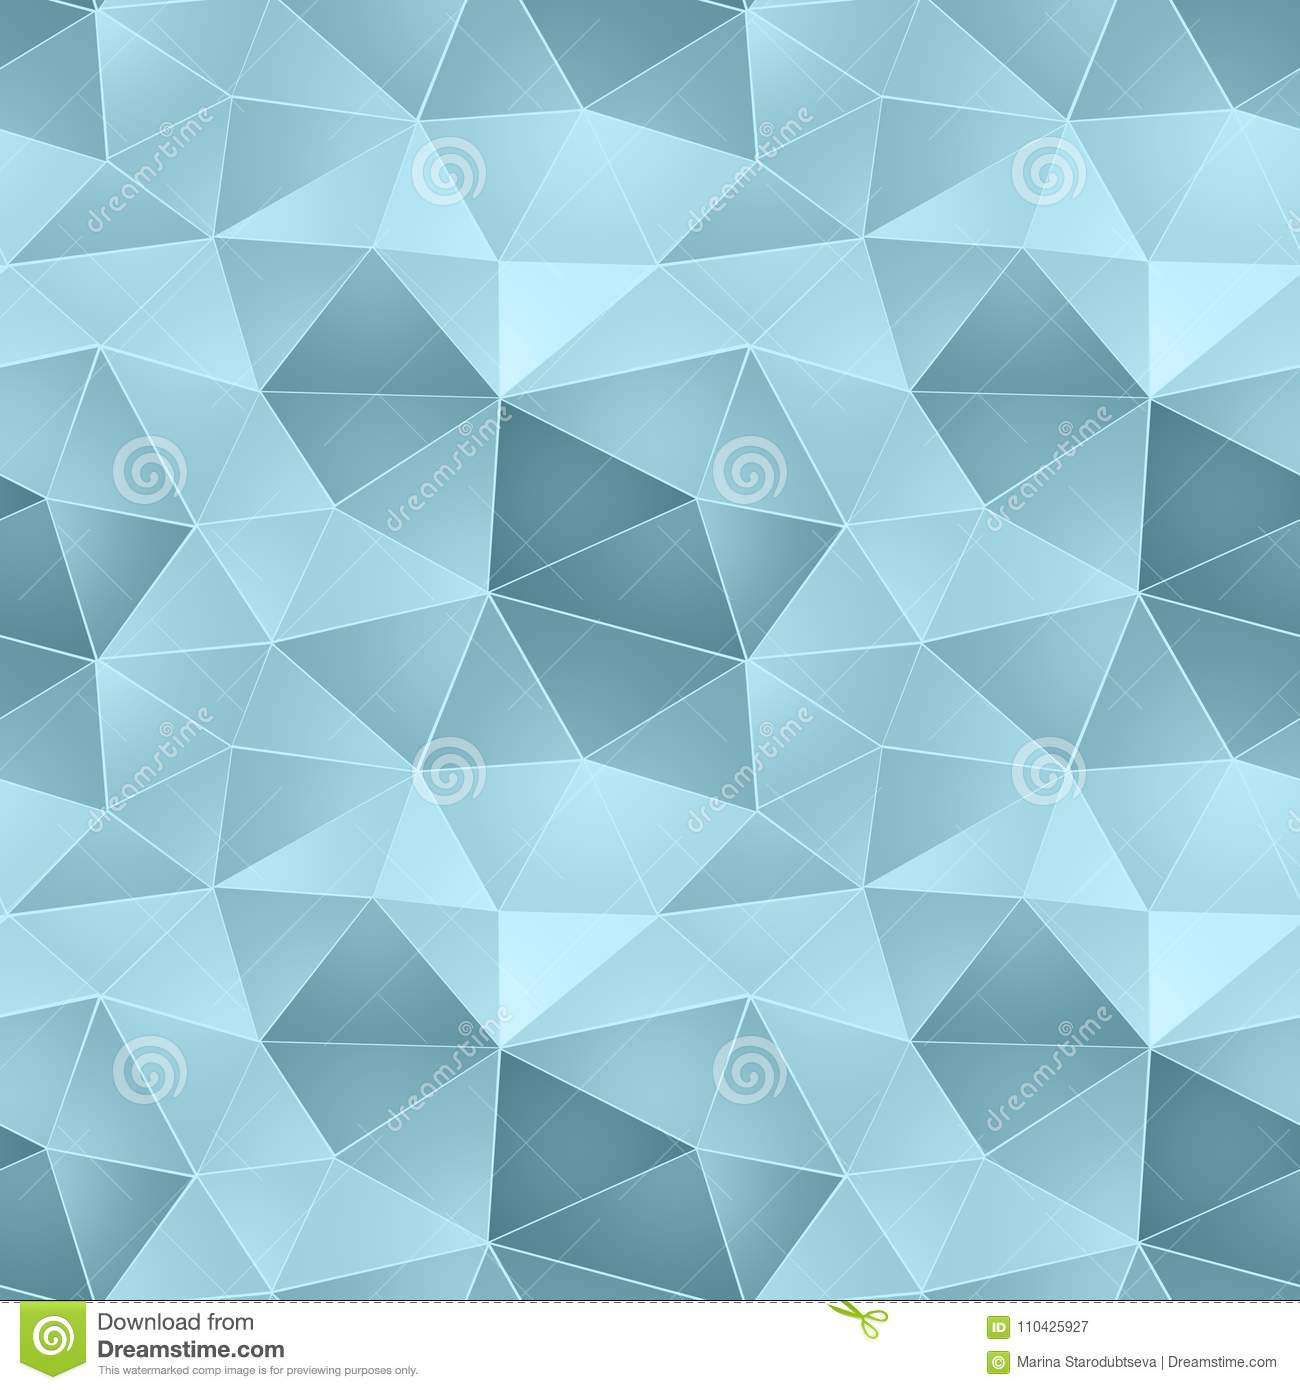 Seamless Abstract Geometric Pattern Blue Light Blue